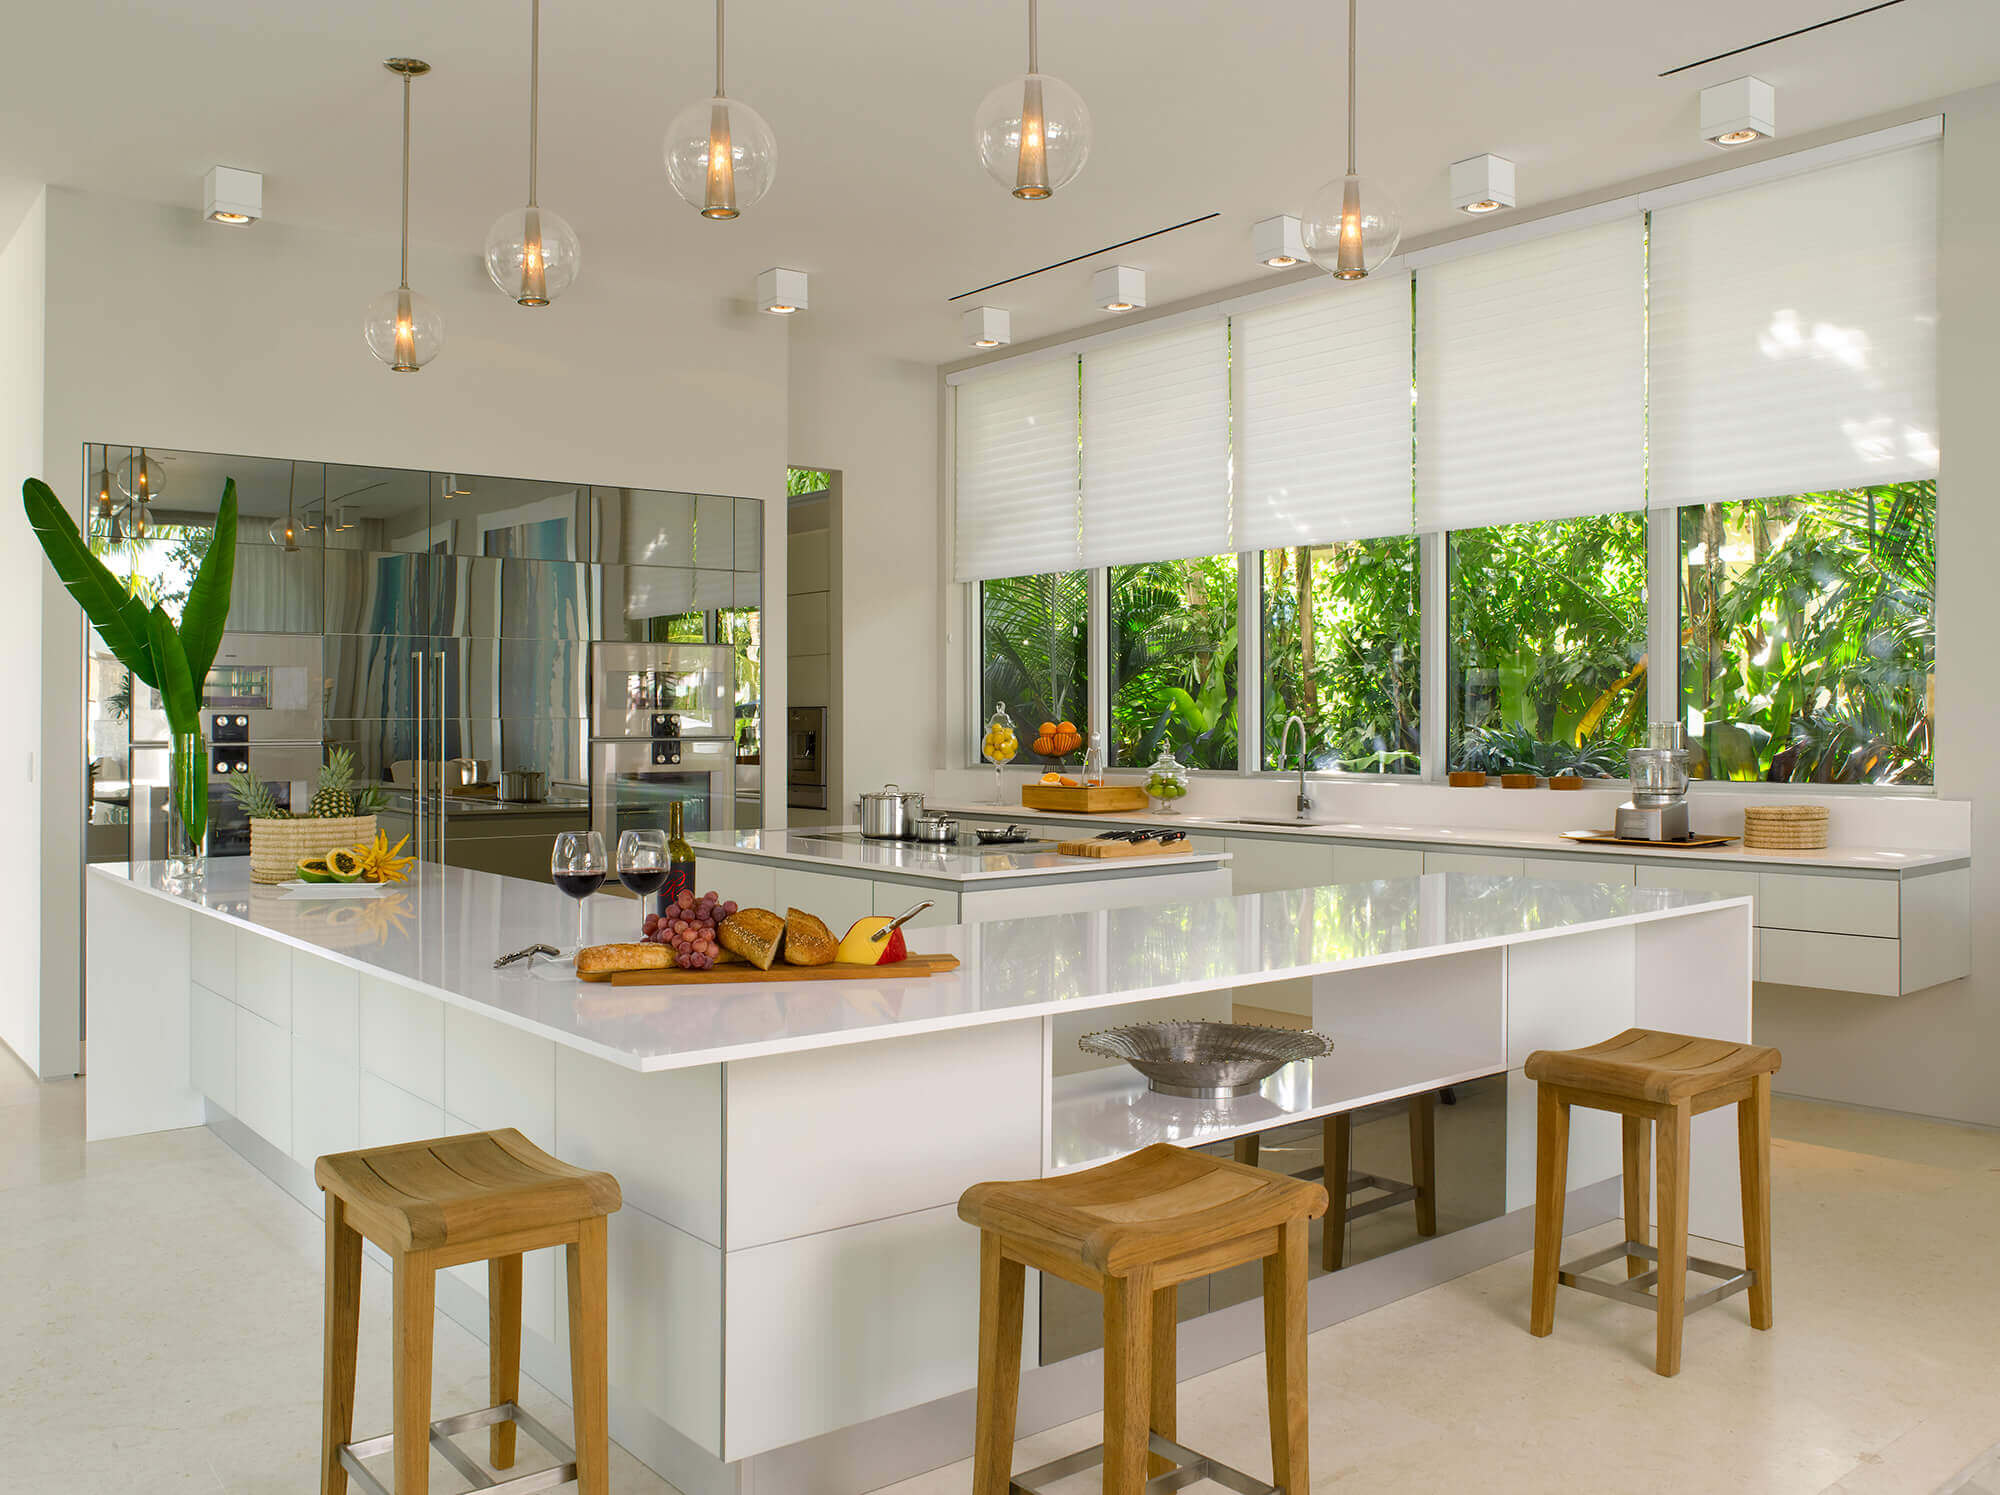 78 great looking modern kitchen gallery sinks islands for Pictures of new kitchens designs